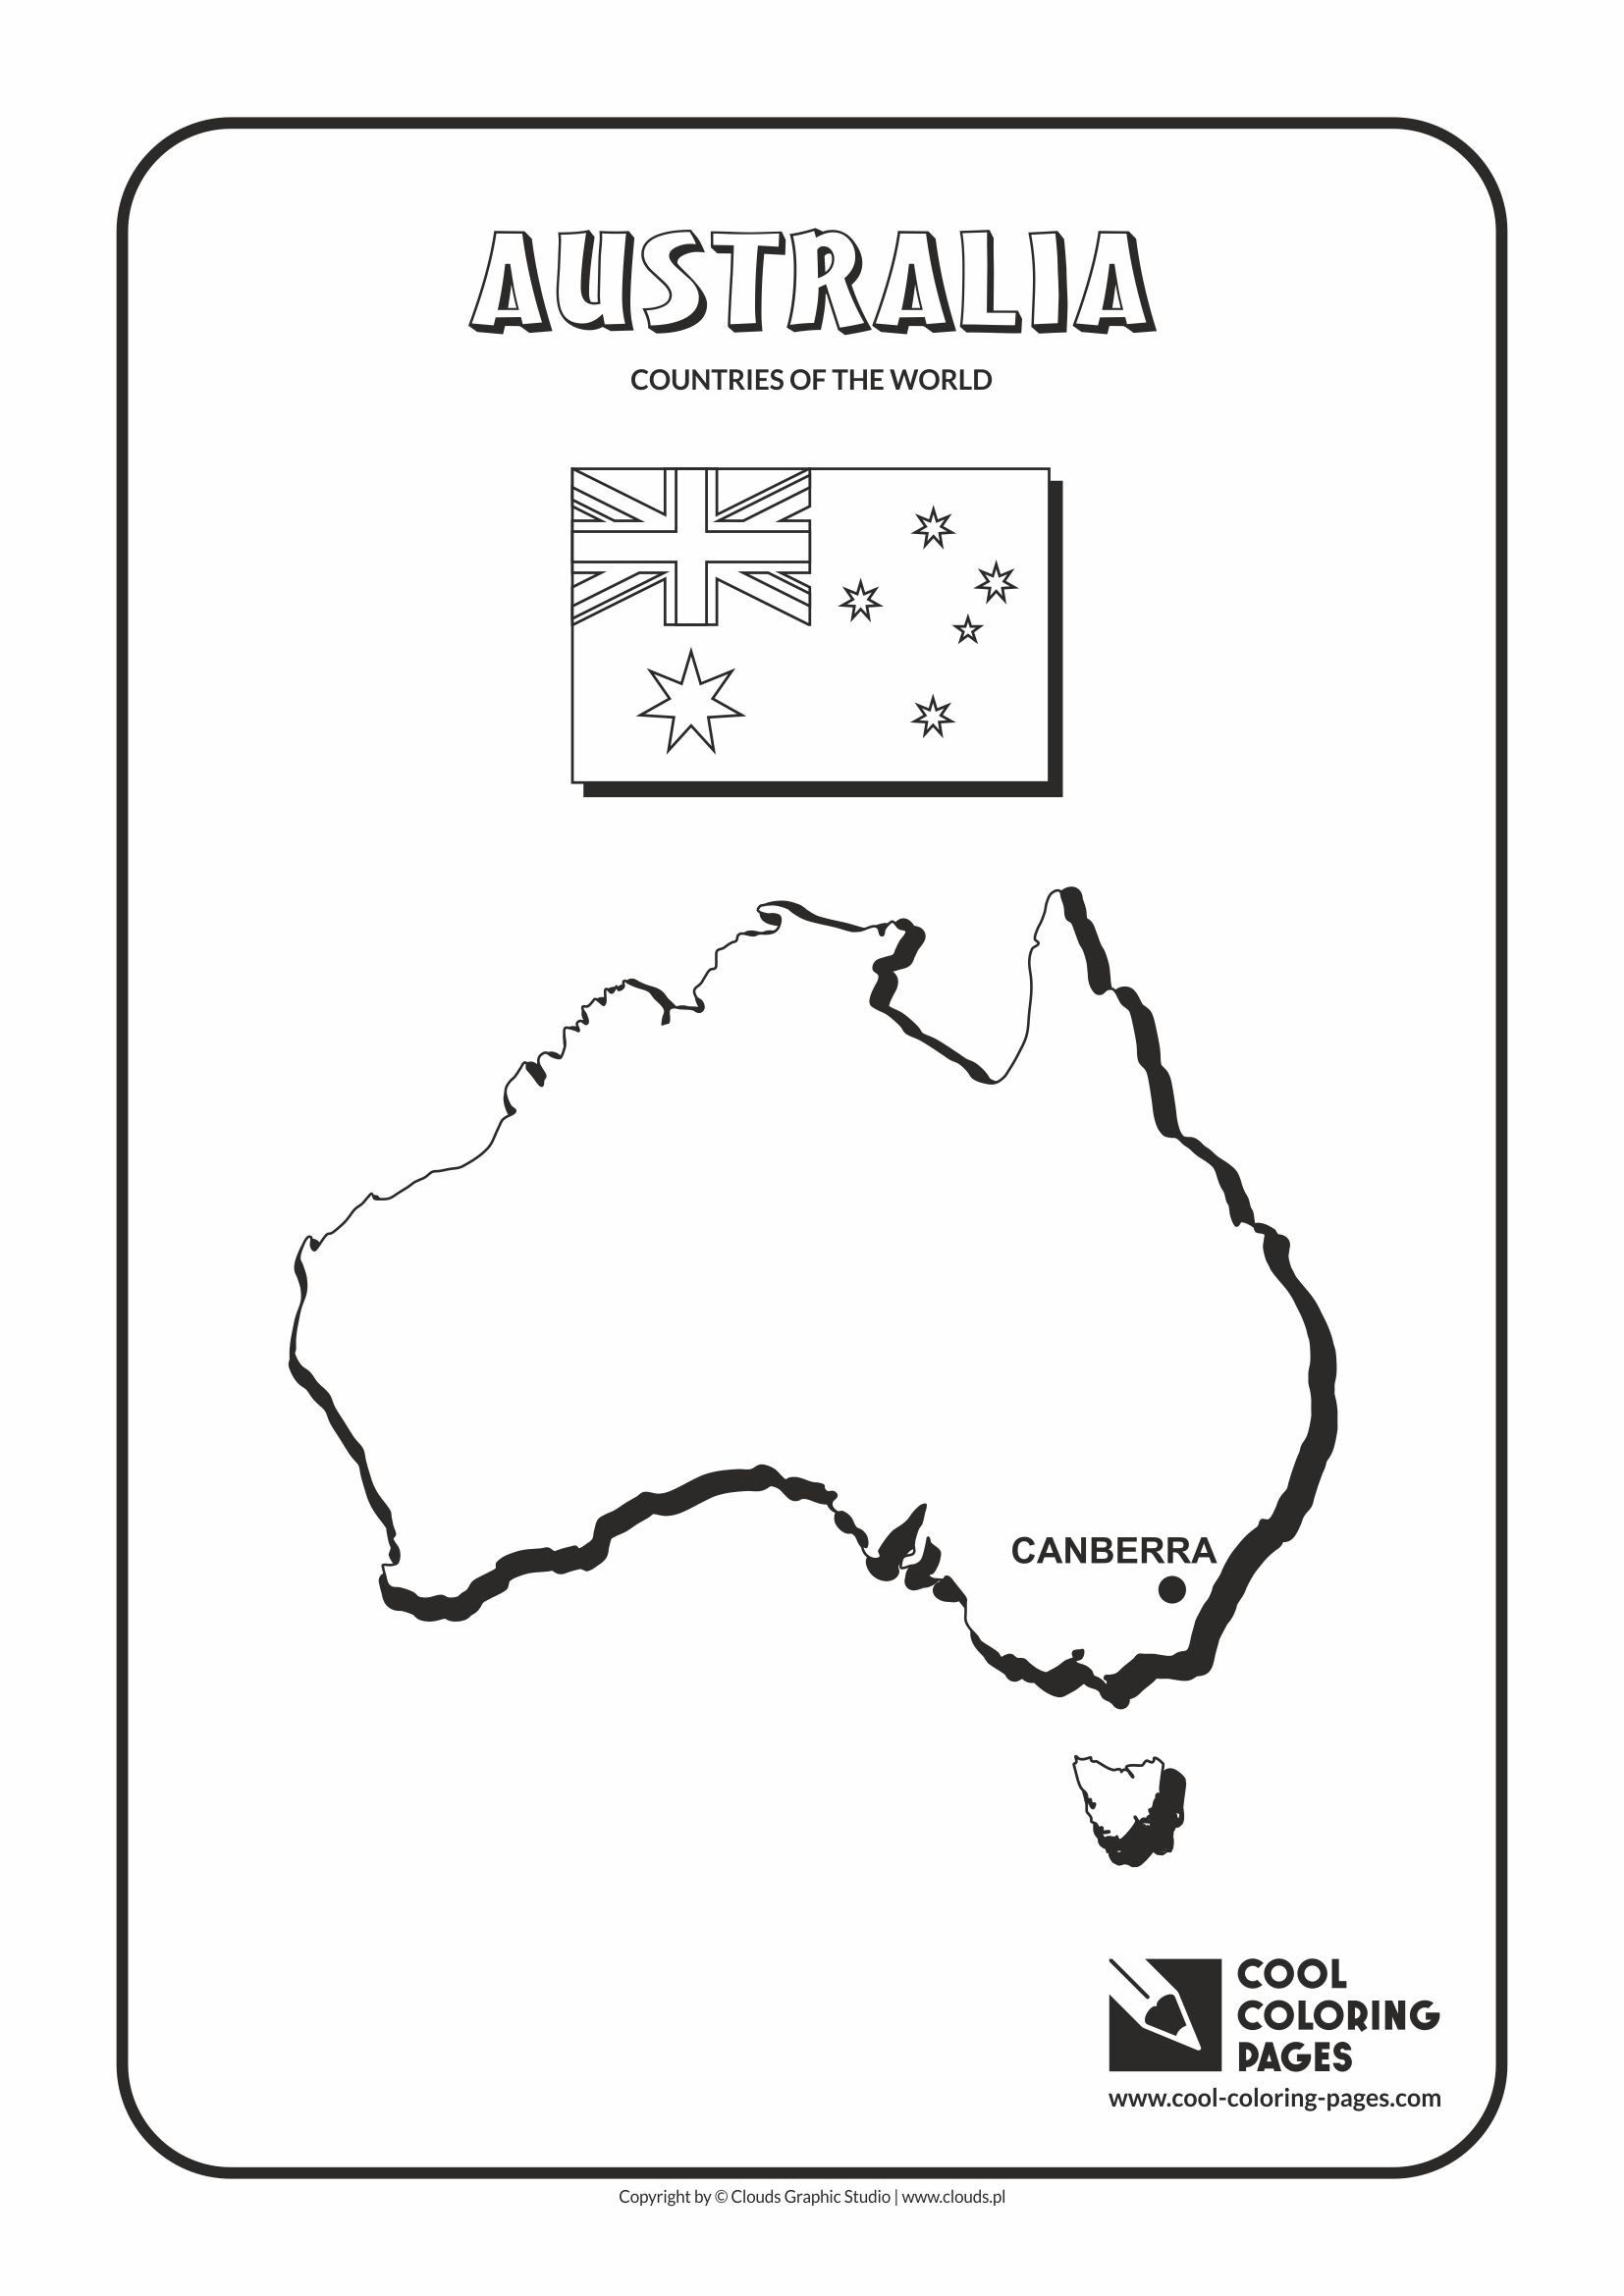 Cool Coloring Pages - Countries of the world / Australia